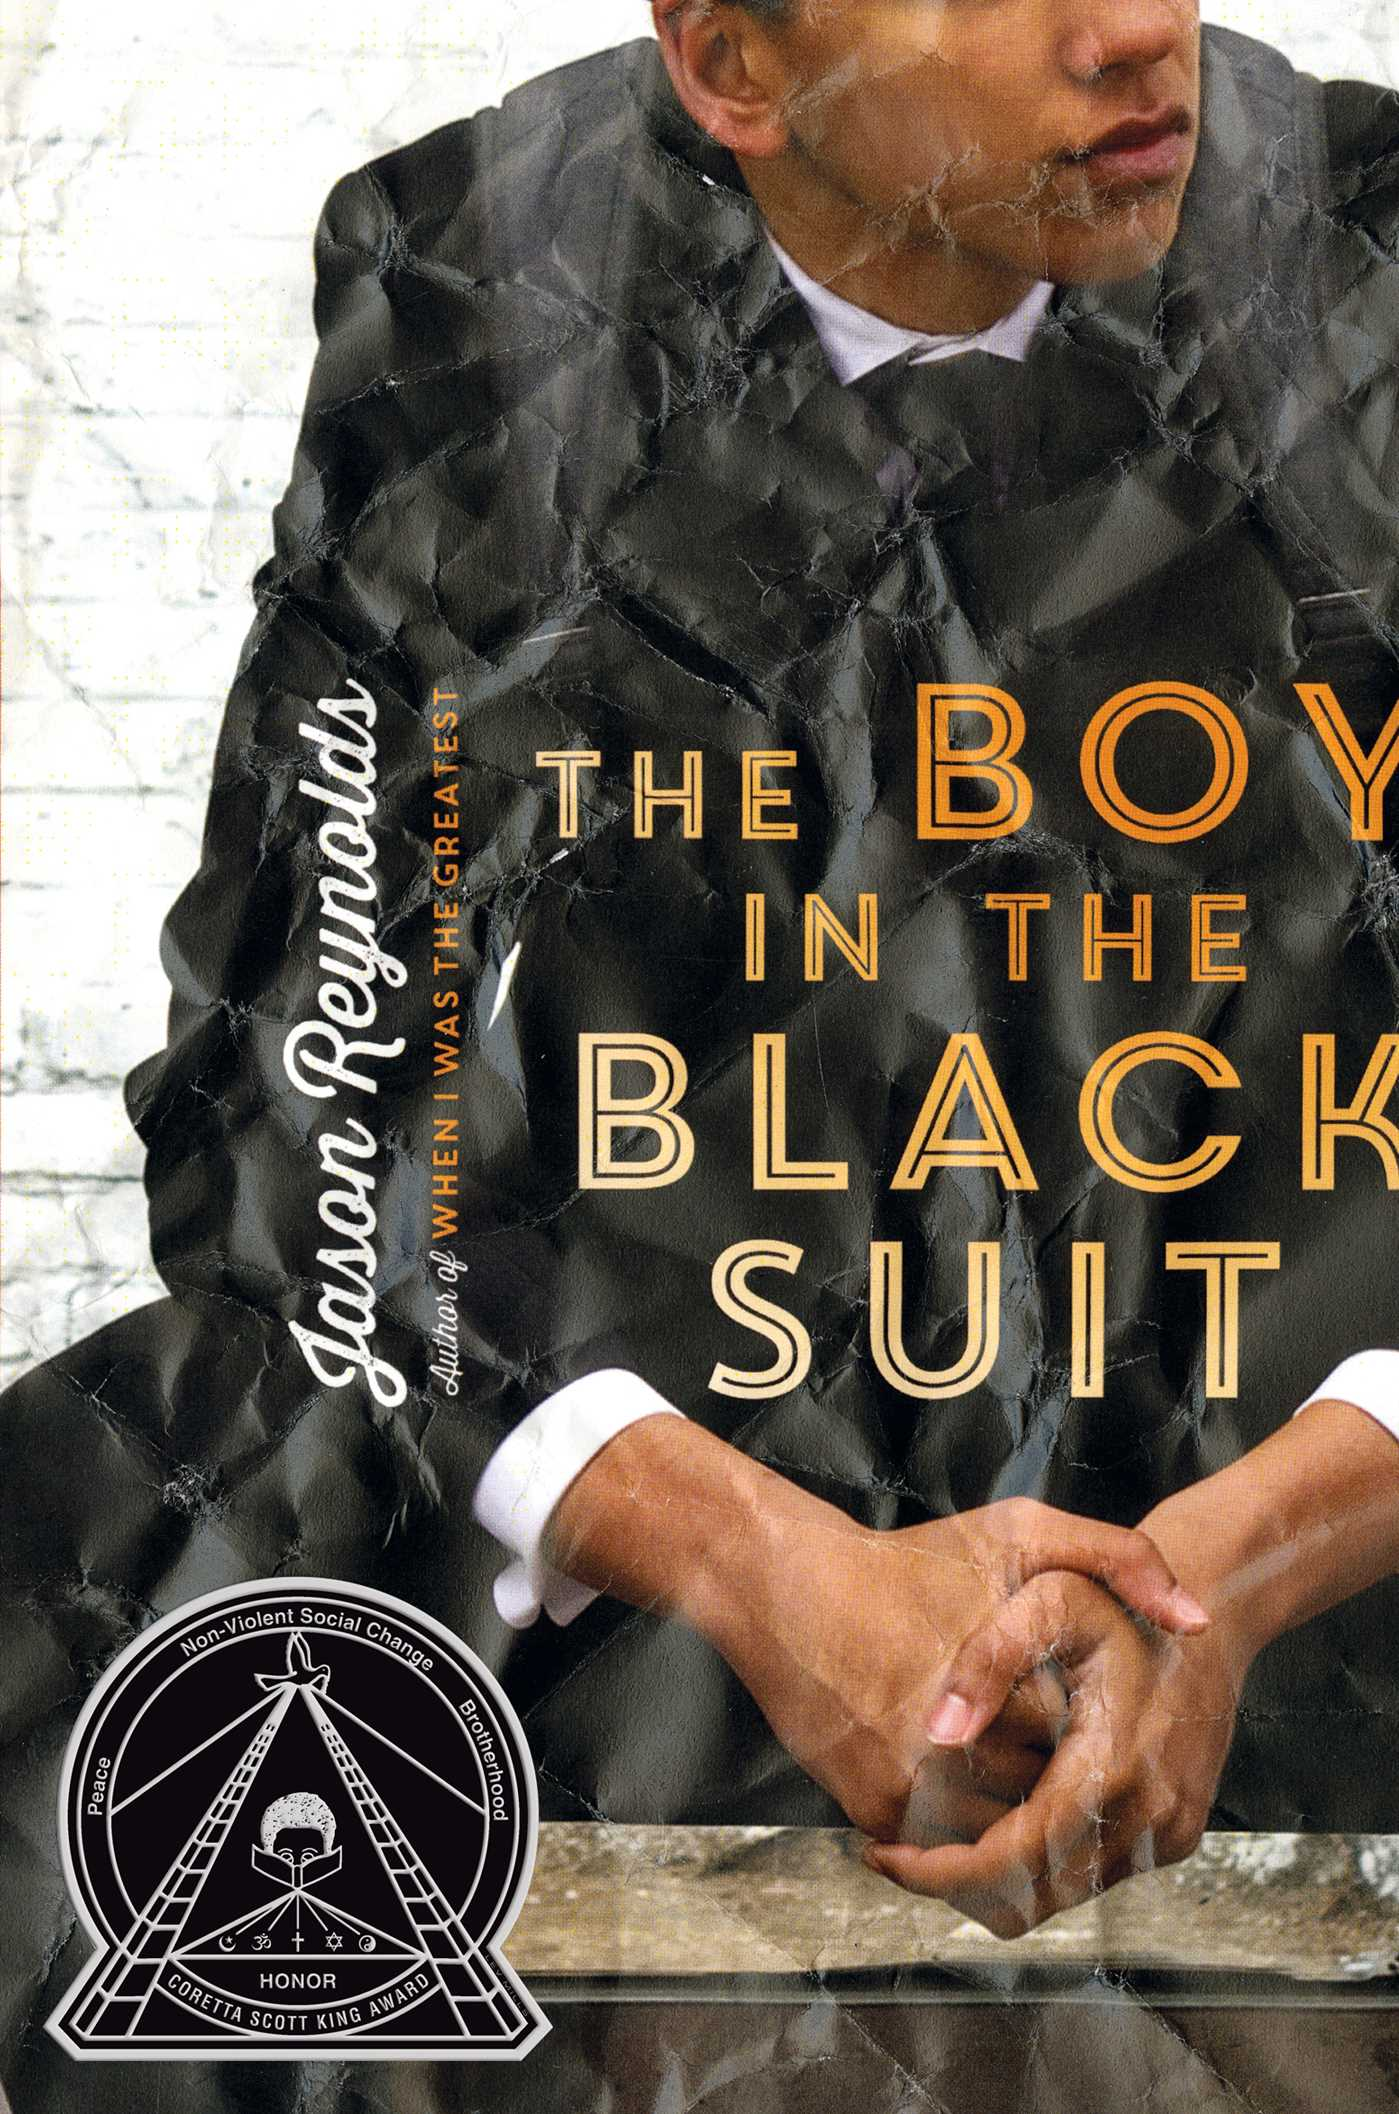 The-boy-in-the-black-suit-9781442459502_hr